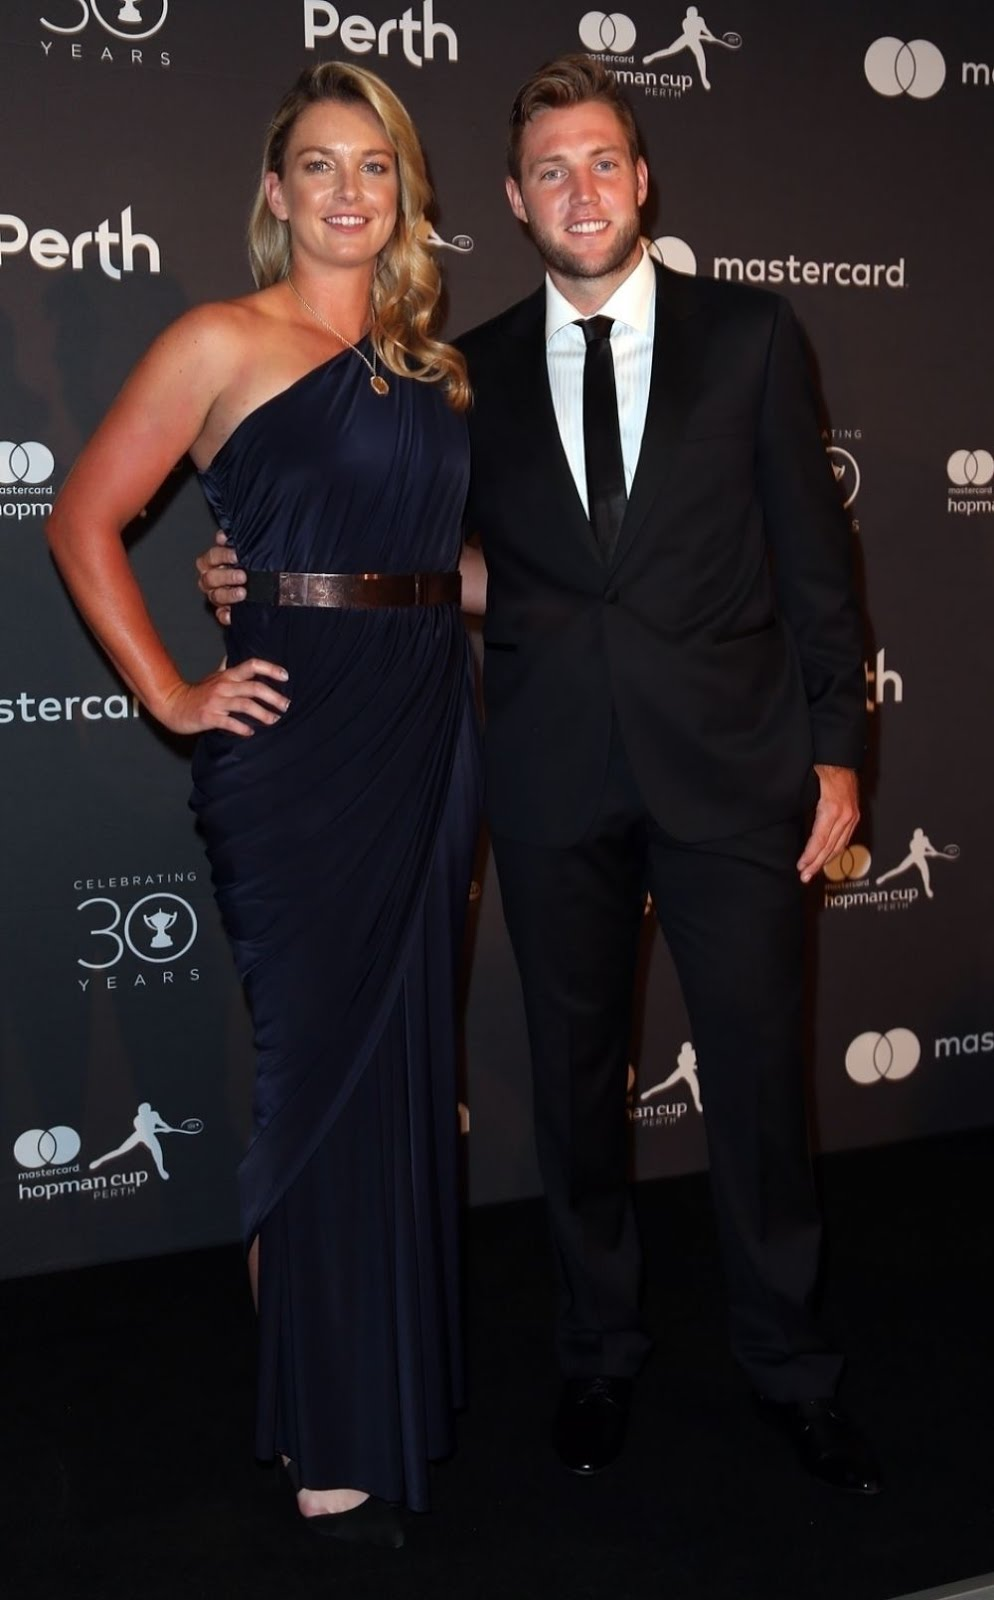 HD Photos of Coco Vandeweghe And Jack Sock At Hopman Cup New Years Eve Players Ball In Perth